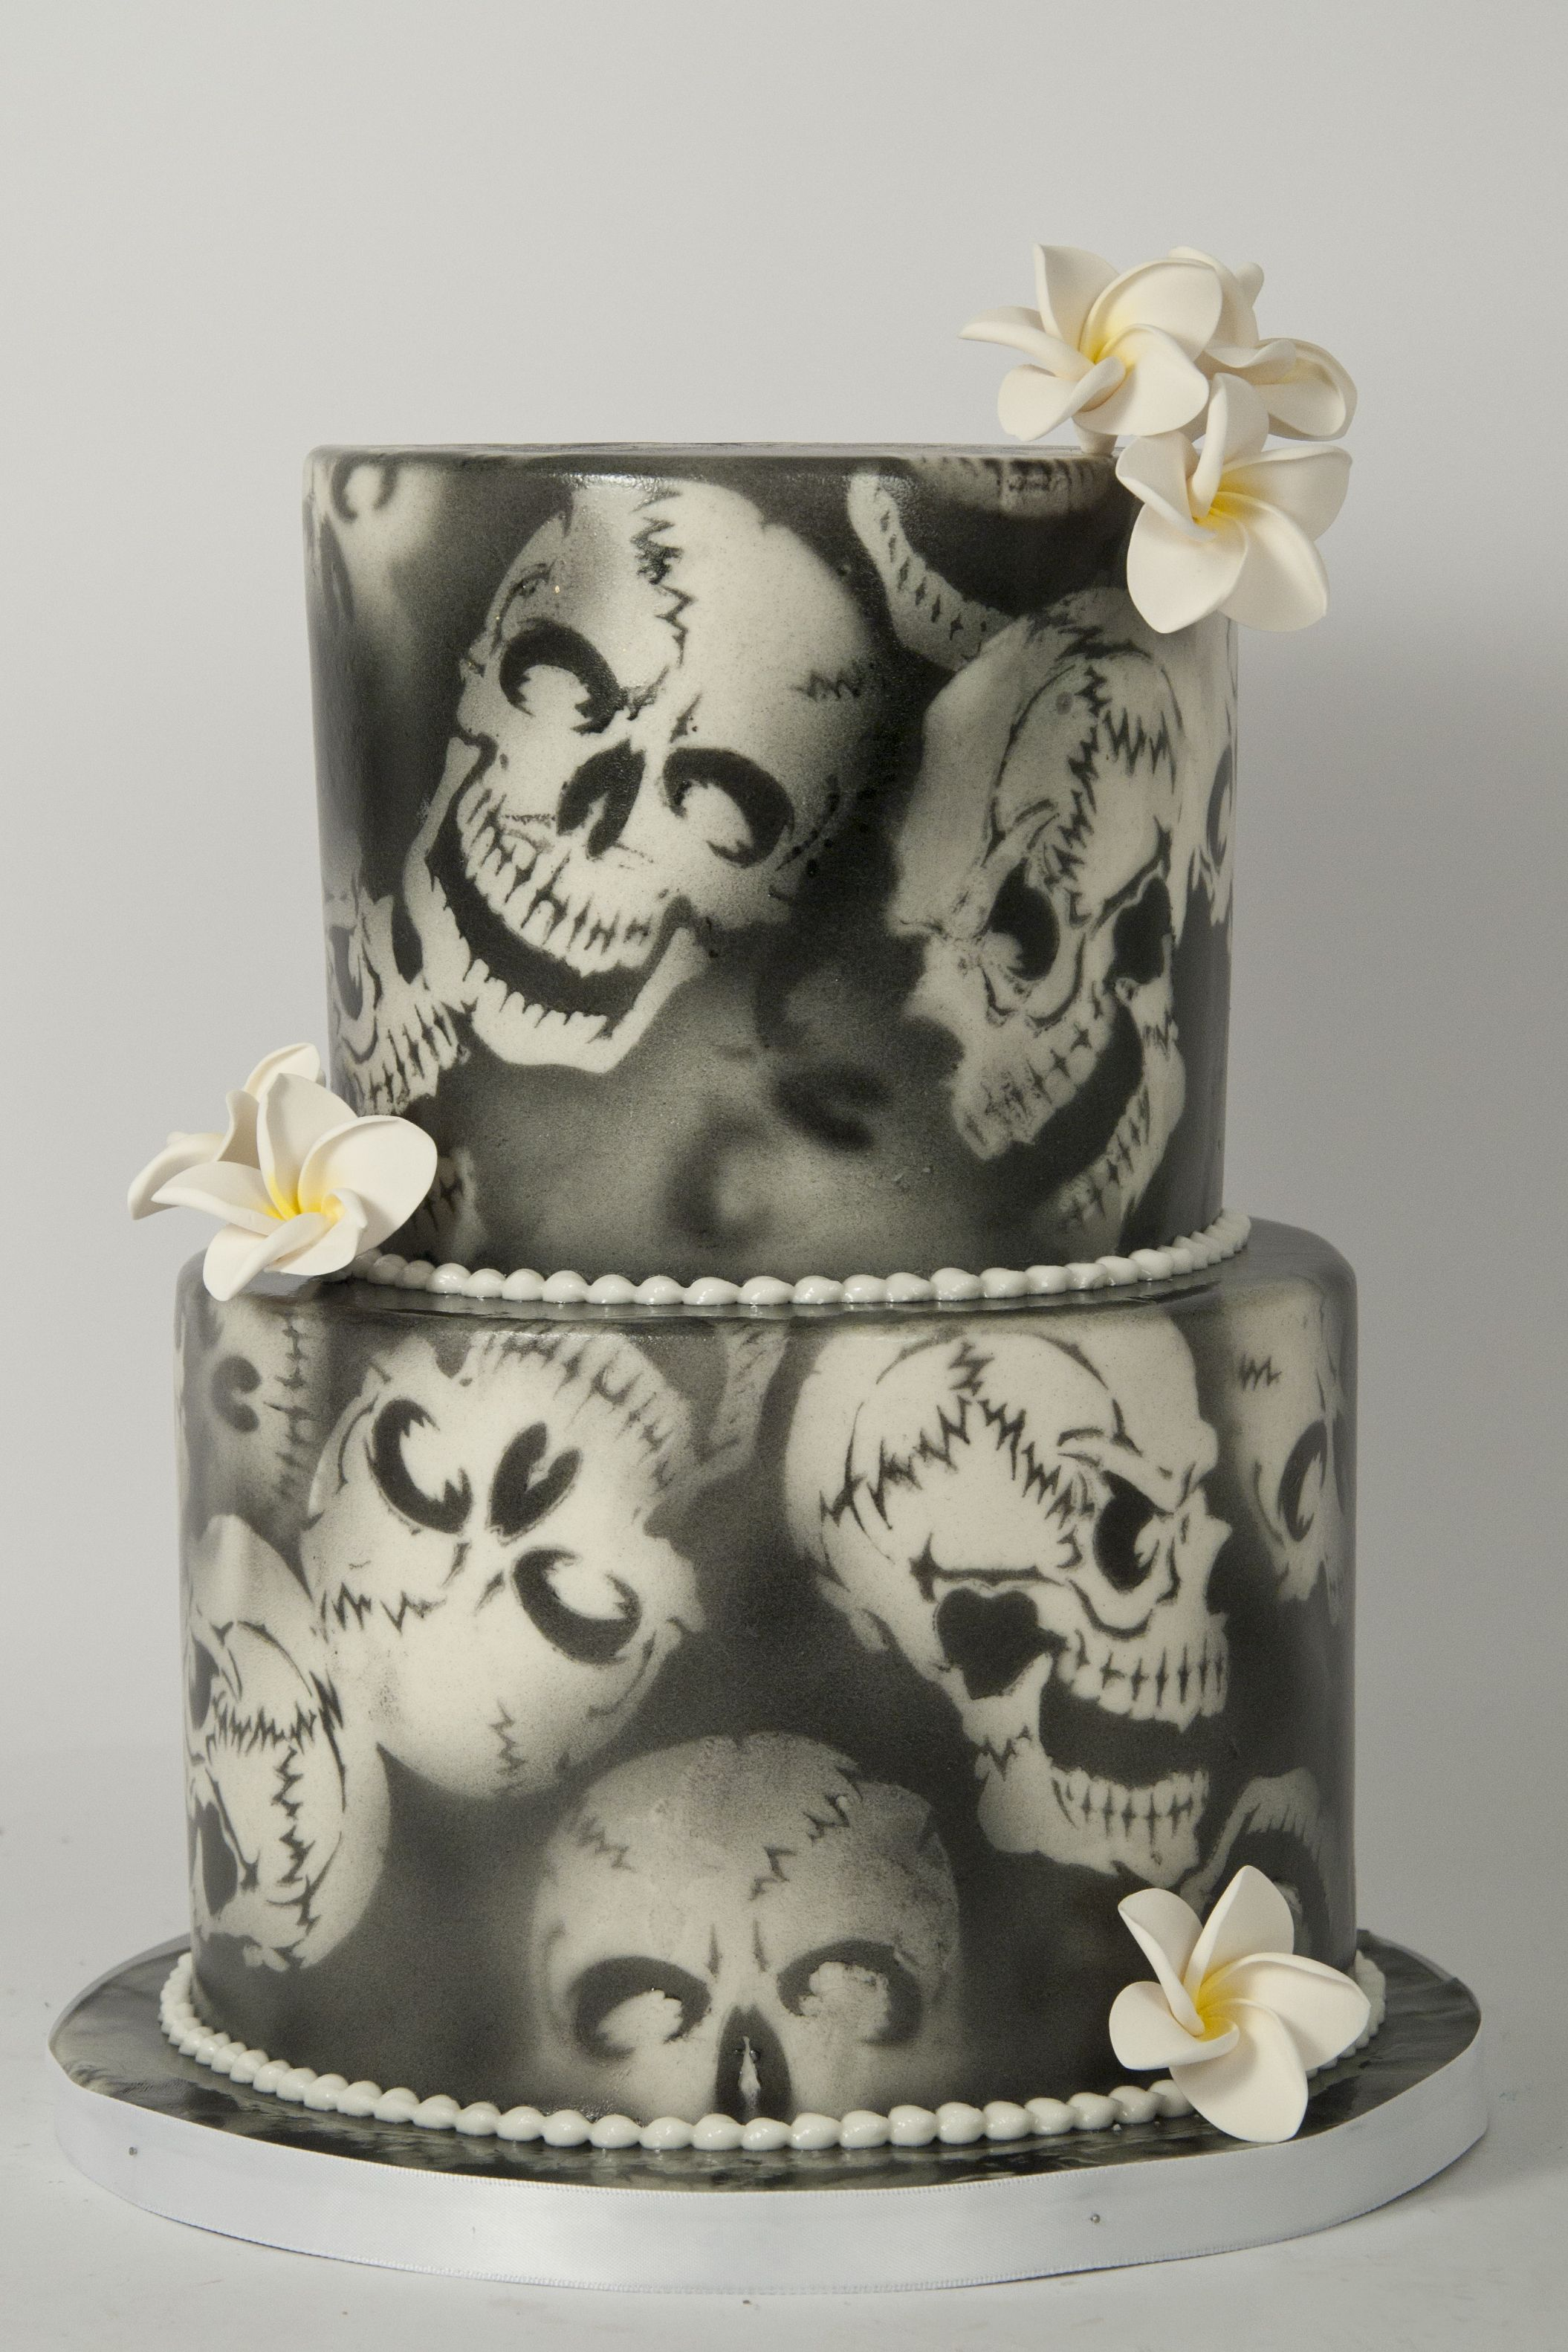 Custom Wedding Cakes For The Love Of Cake Shop In Store Or